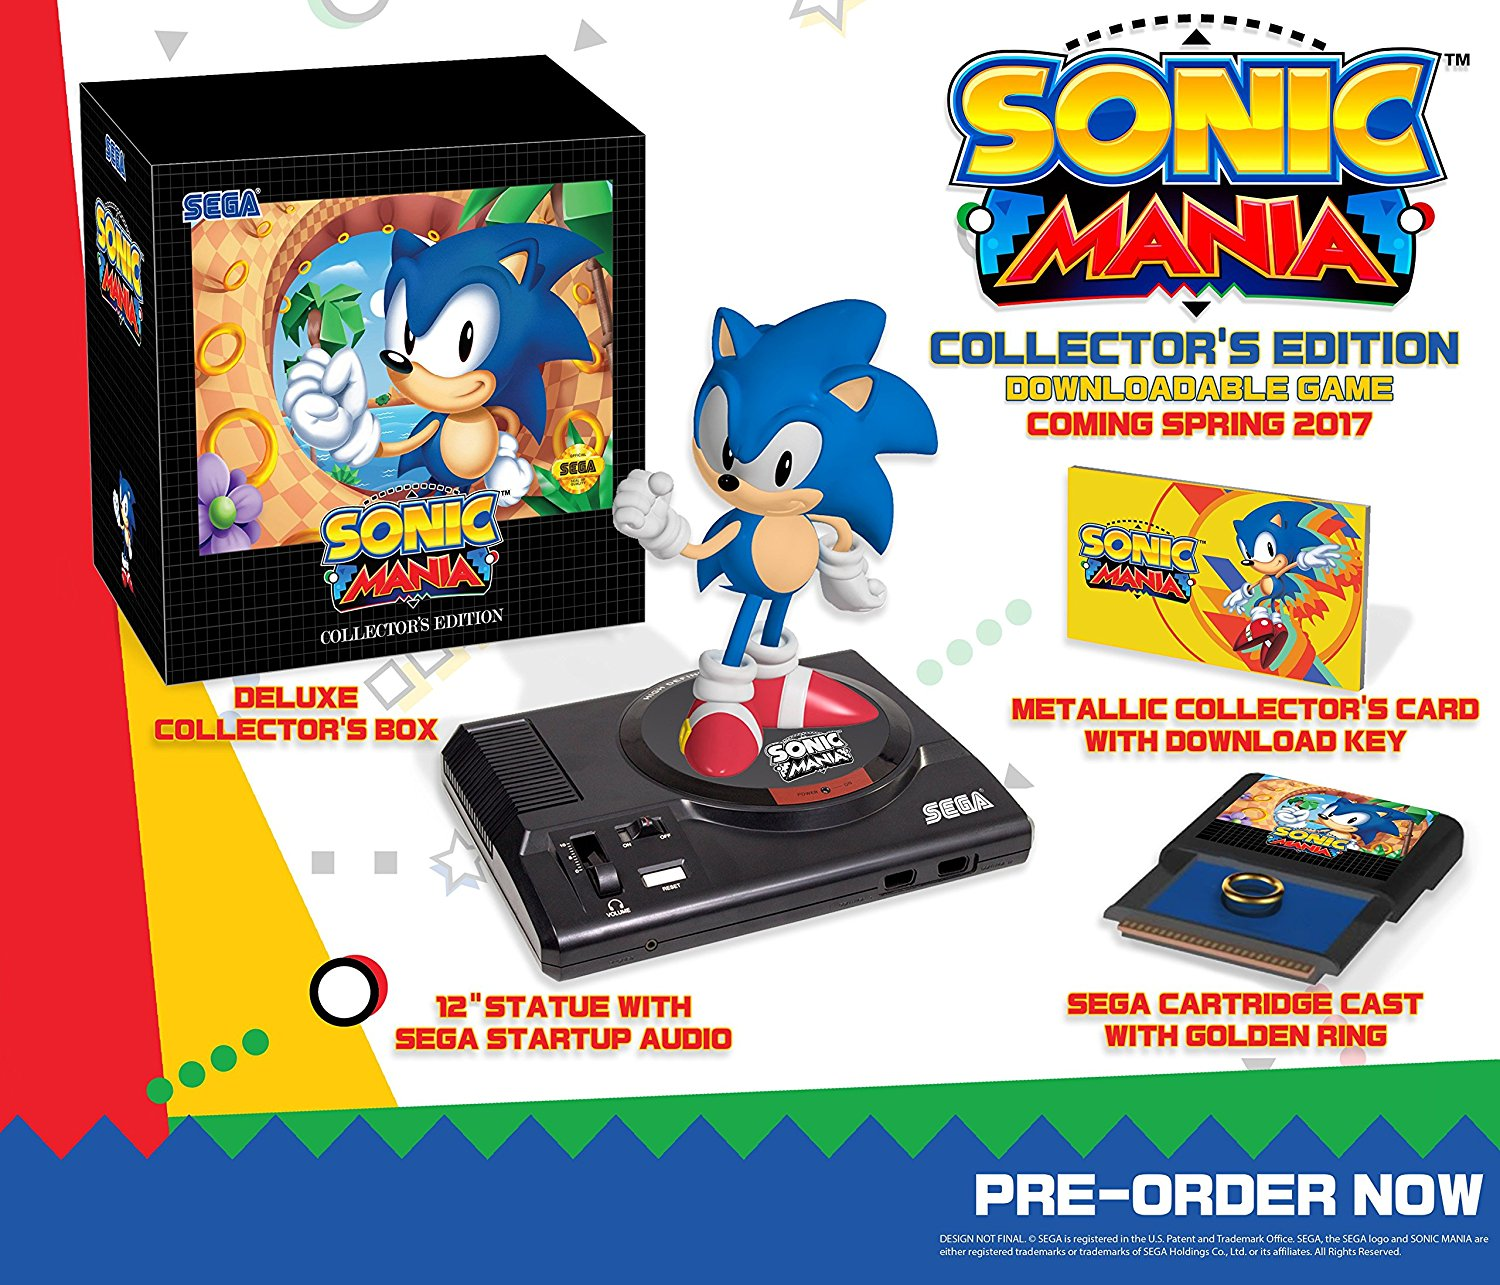 Best Buy Is Now Taking Preorders For The Sonic Mania Collector's Edition  It Previously Sold Out On Amazon, But The Retailer Has It Here